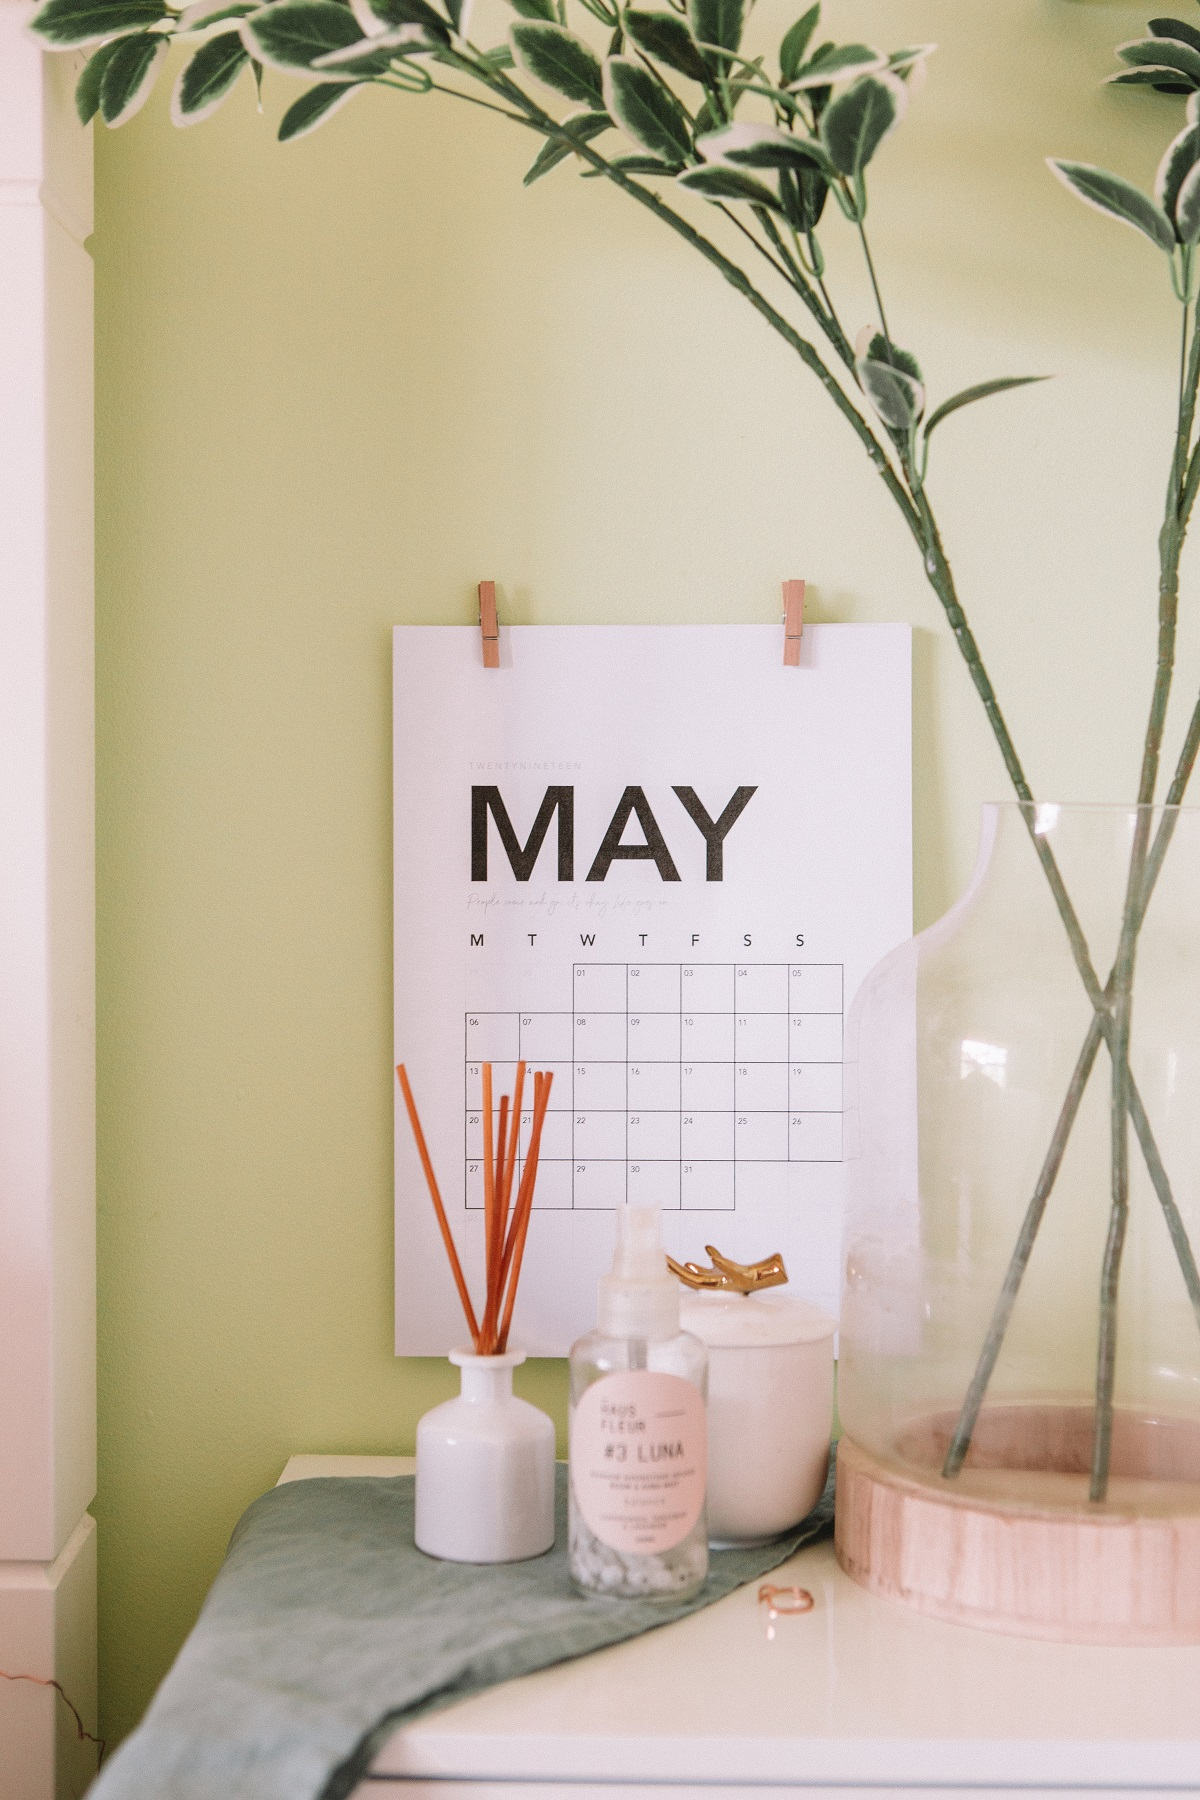 May calendar for Jean-Luc Andriot blog 050619